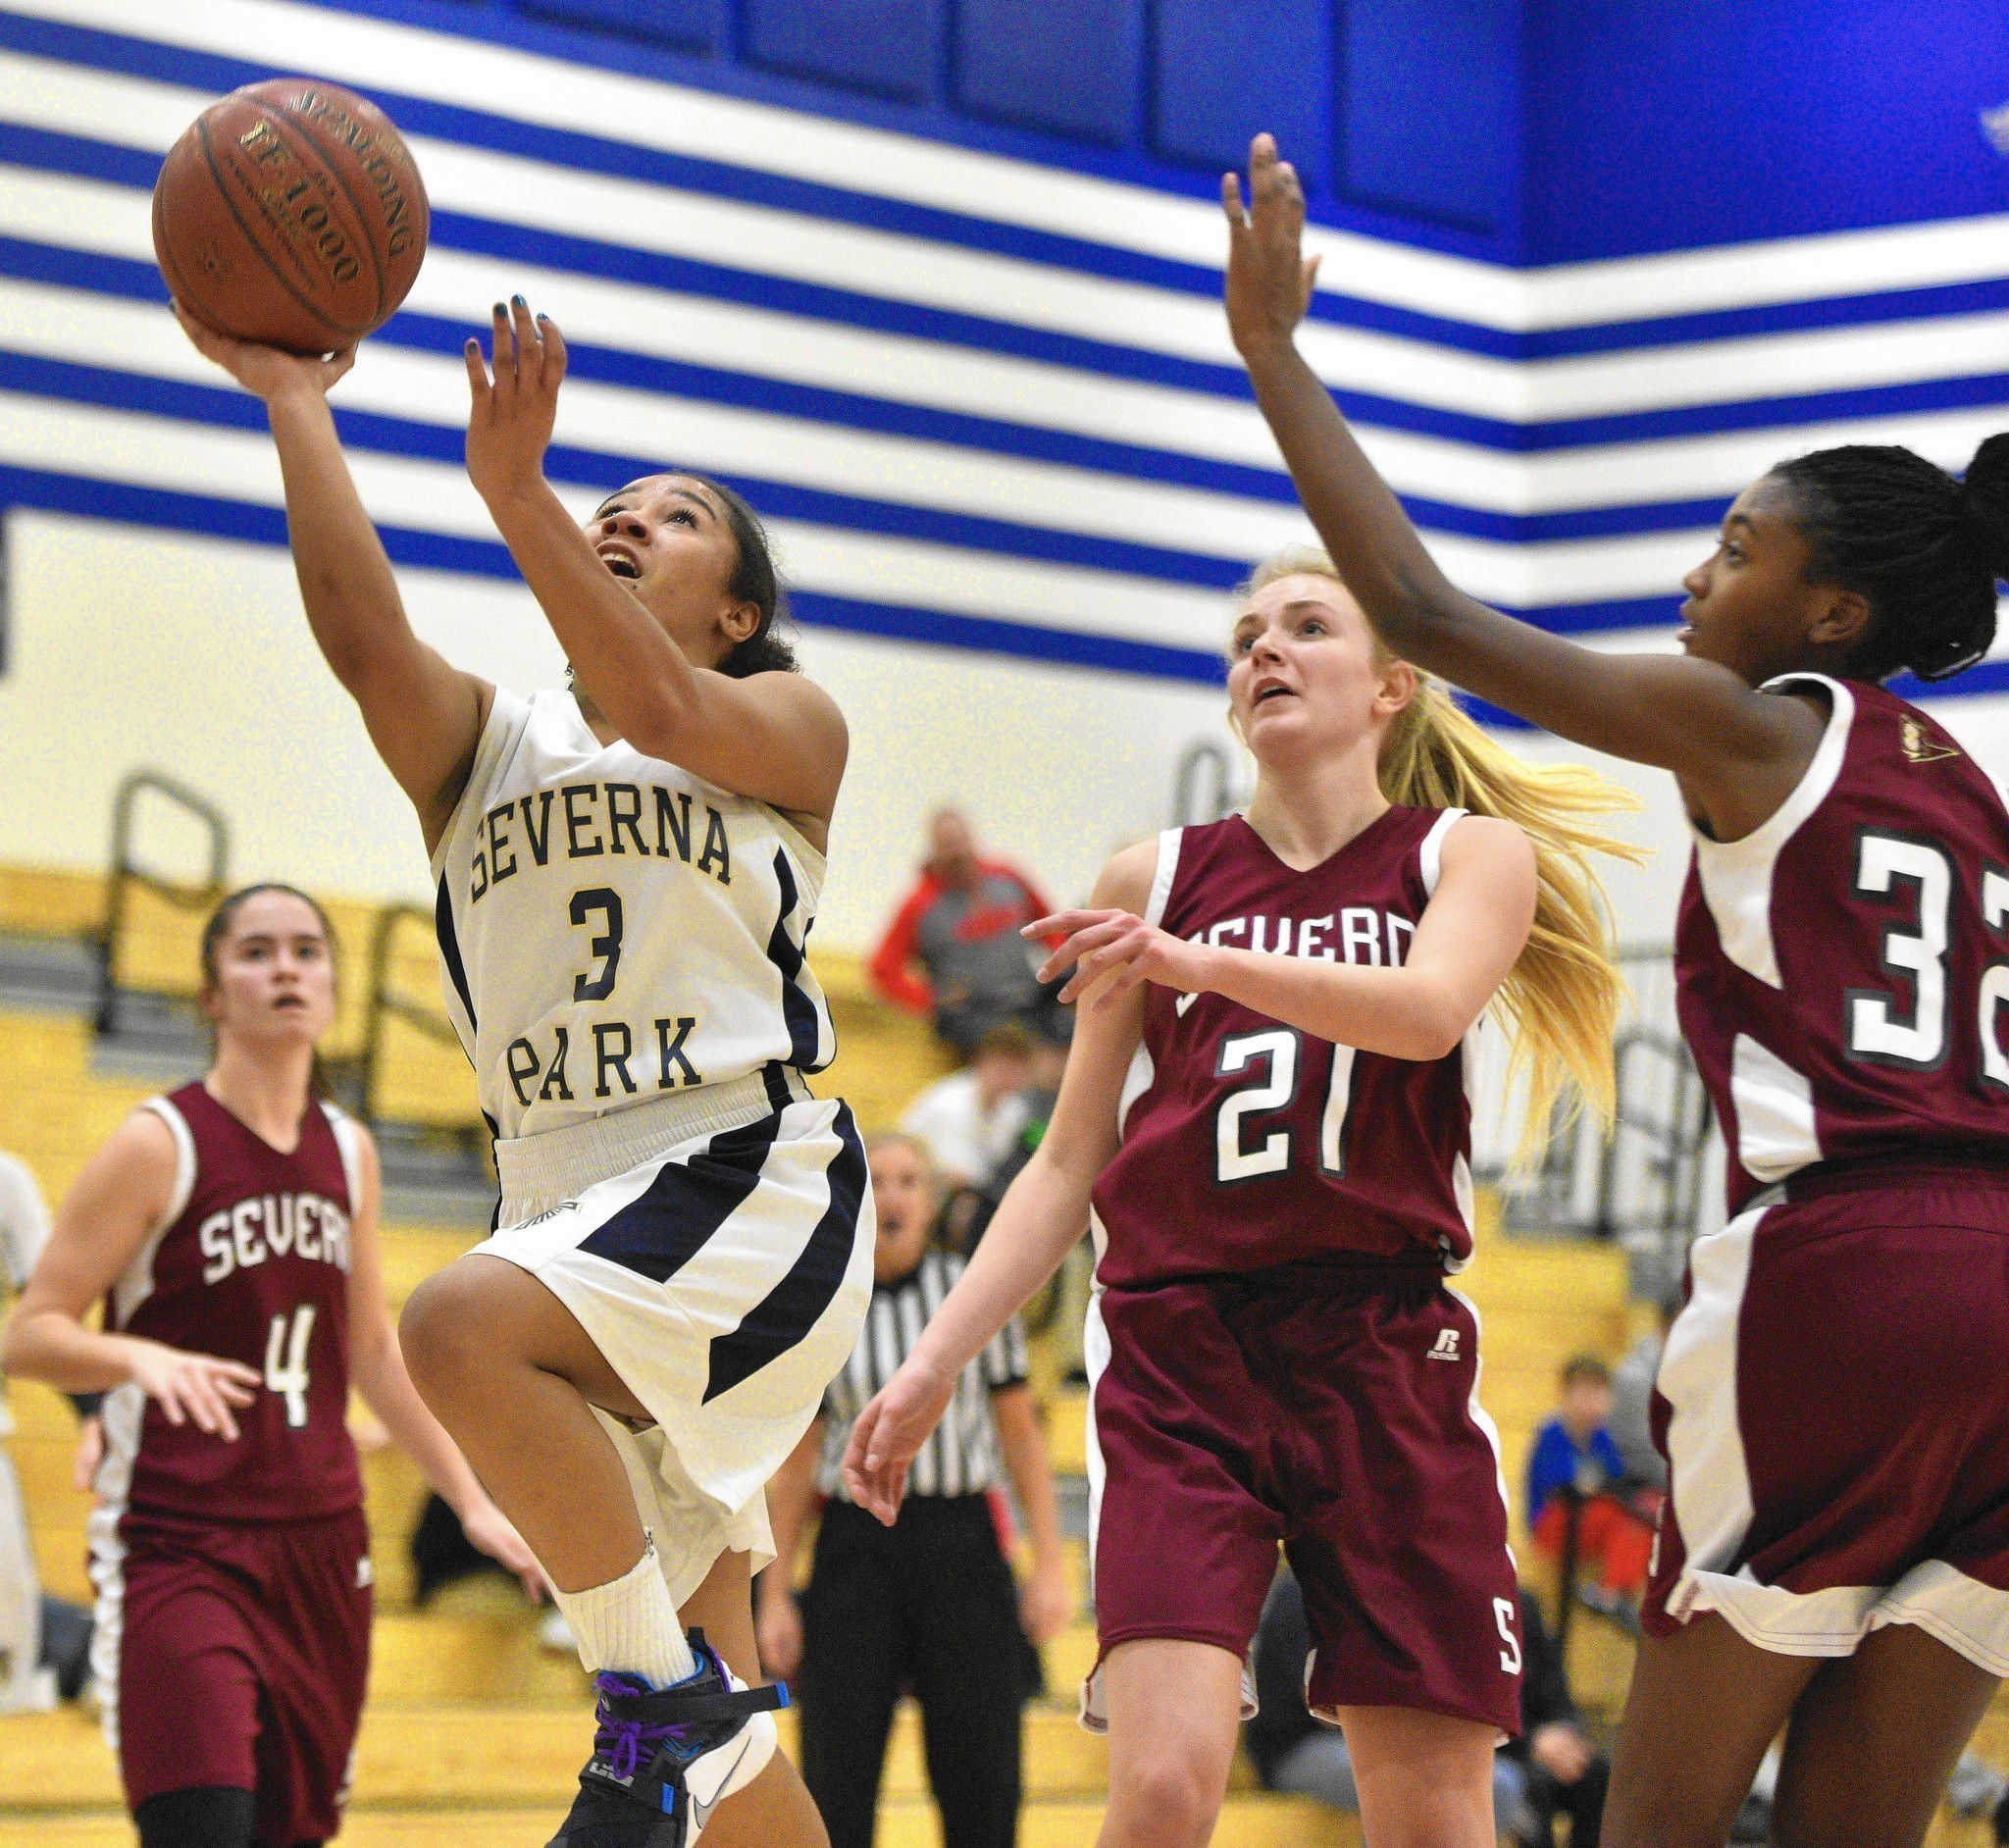 The Severn Baltimore Md: Severna Park Girls Down Severn For Eighth Straight Win